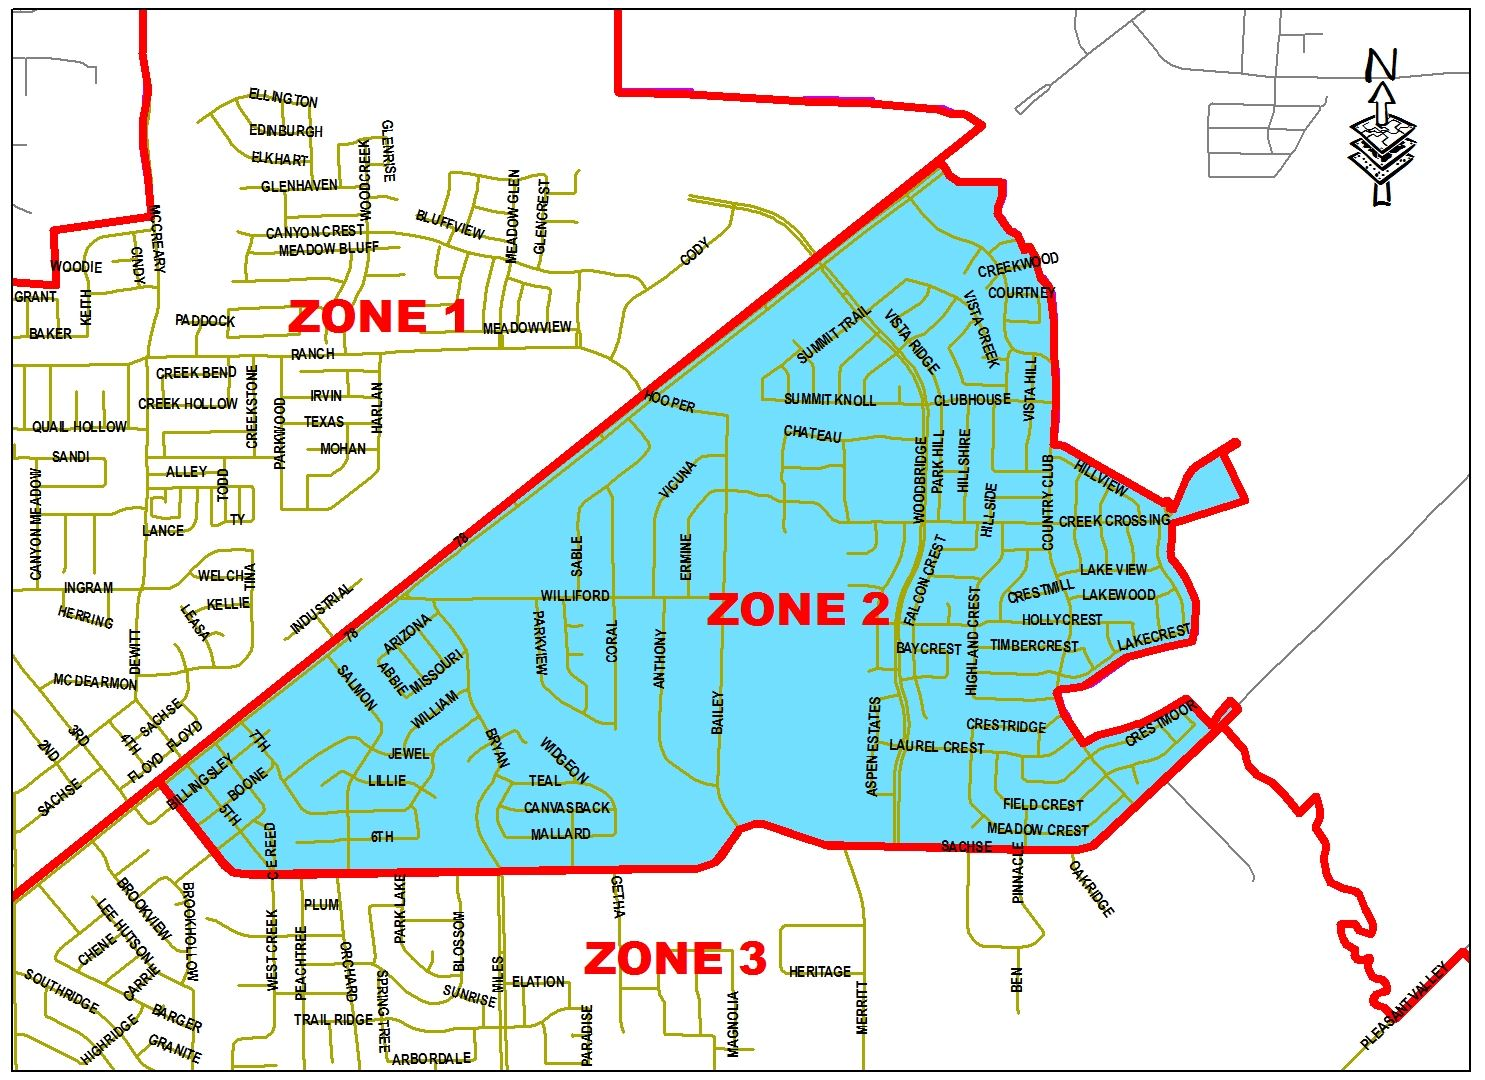 Spraying Map - Zone 2